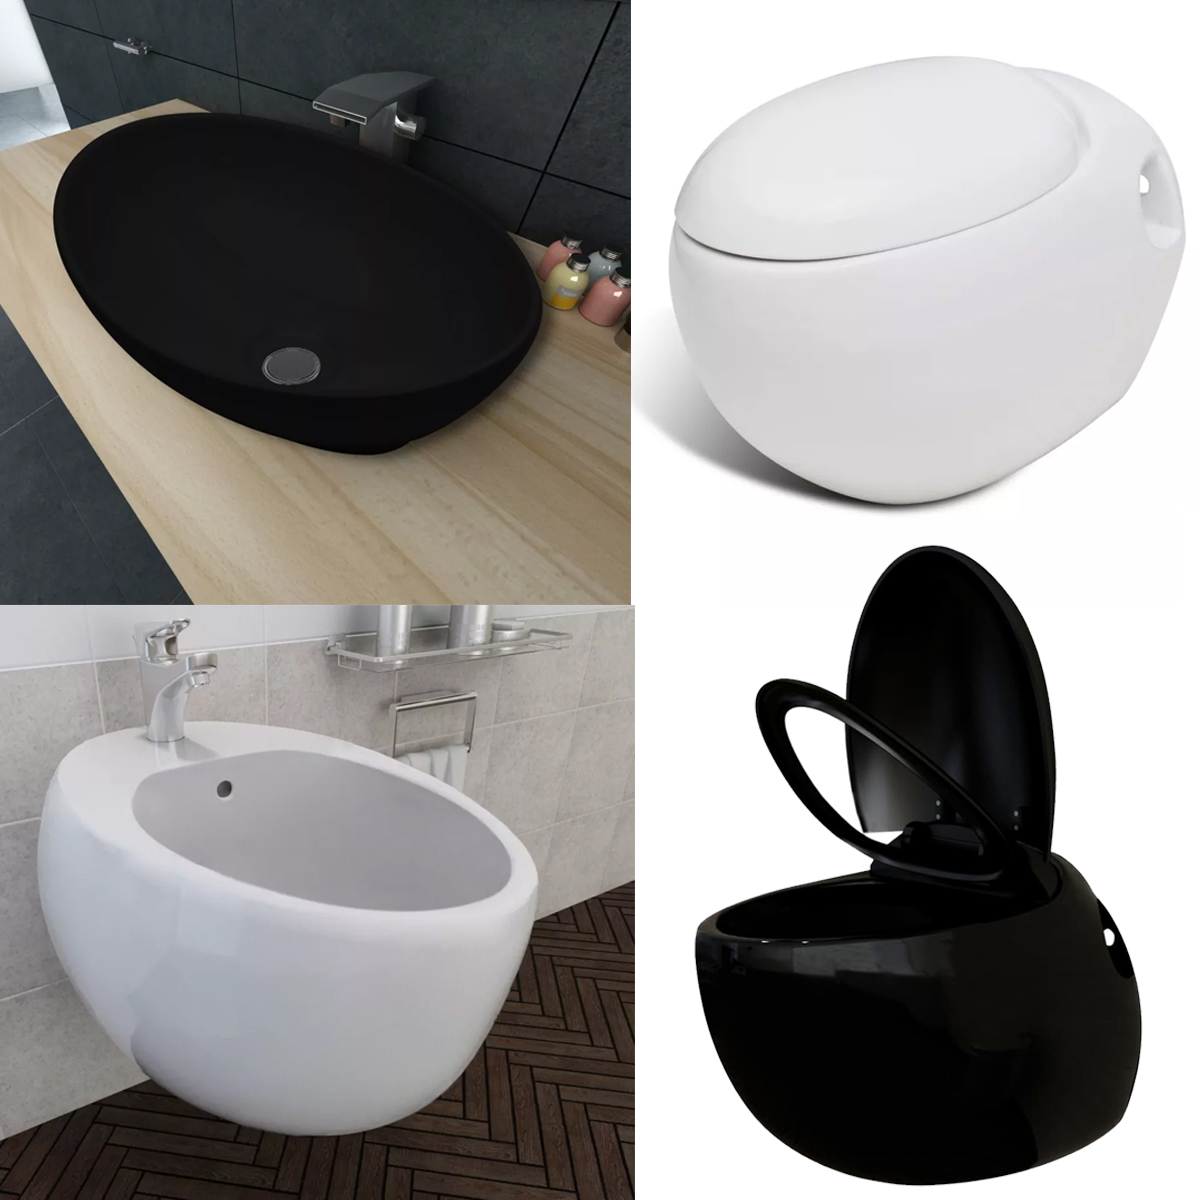 Tremendous Details About Unique Egg Design Wall Hung Toilet Bidet Luxury Ceramic Basin Oval Shaped Sink Bralicious Painted Fabric Chair Ideas Braliciousco